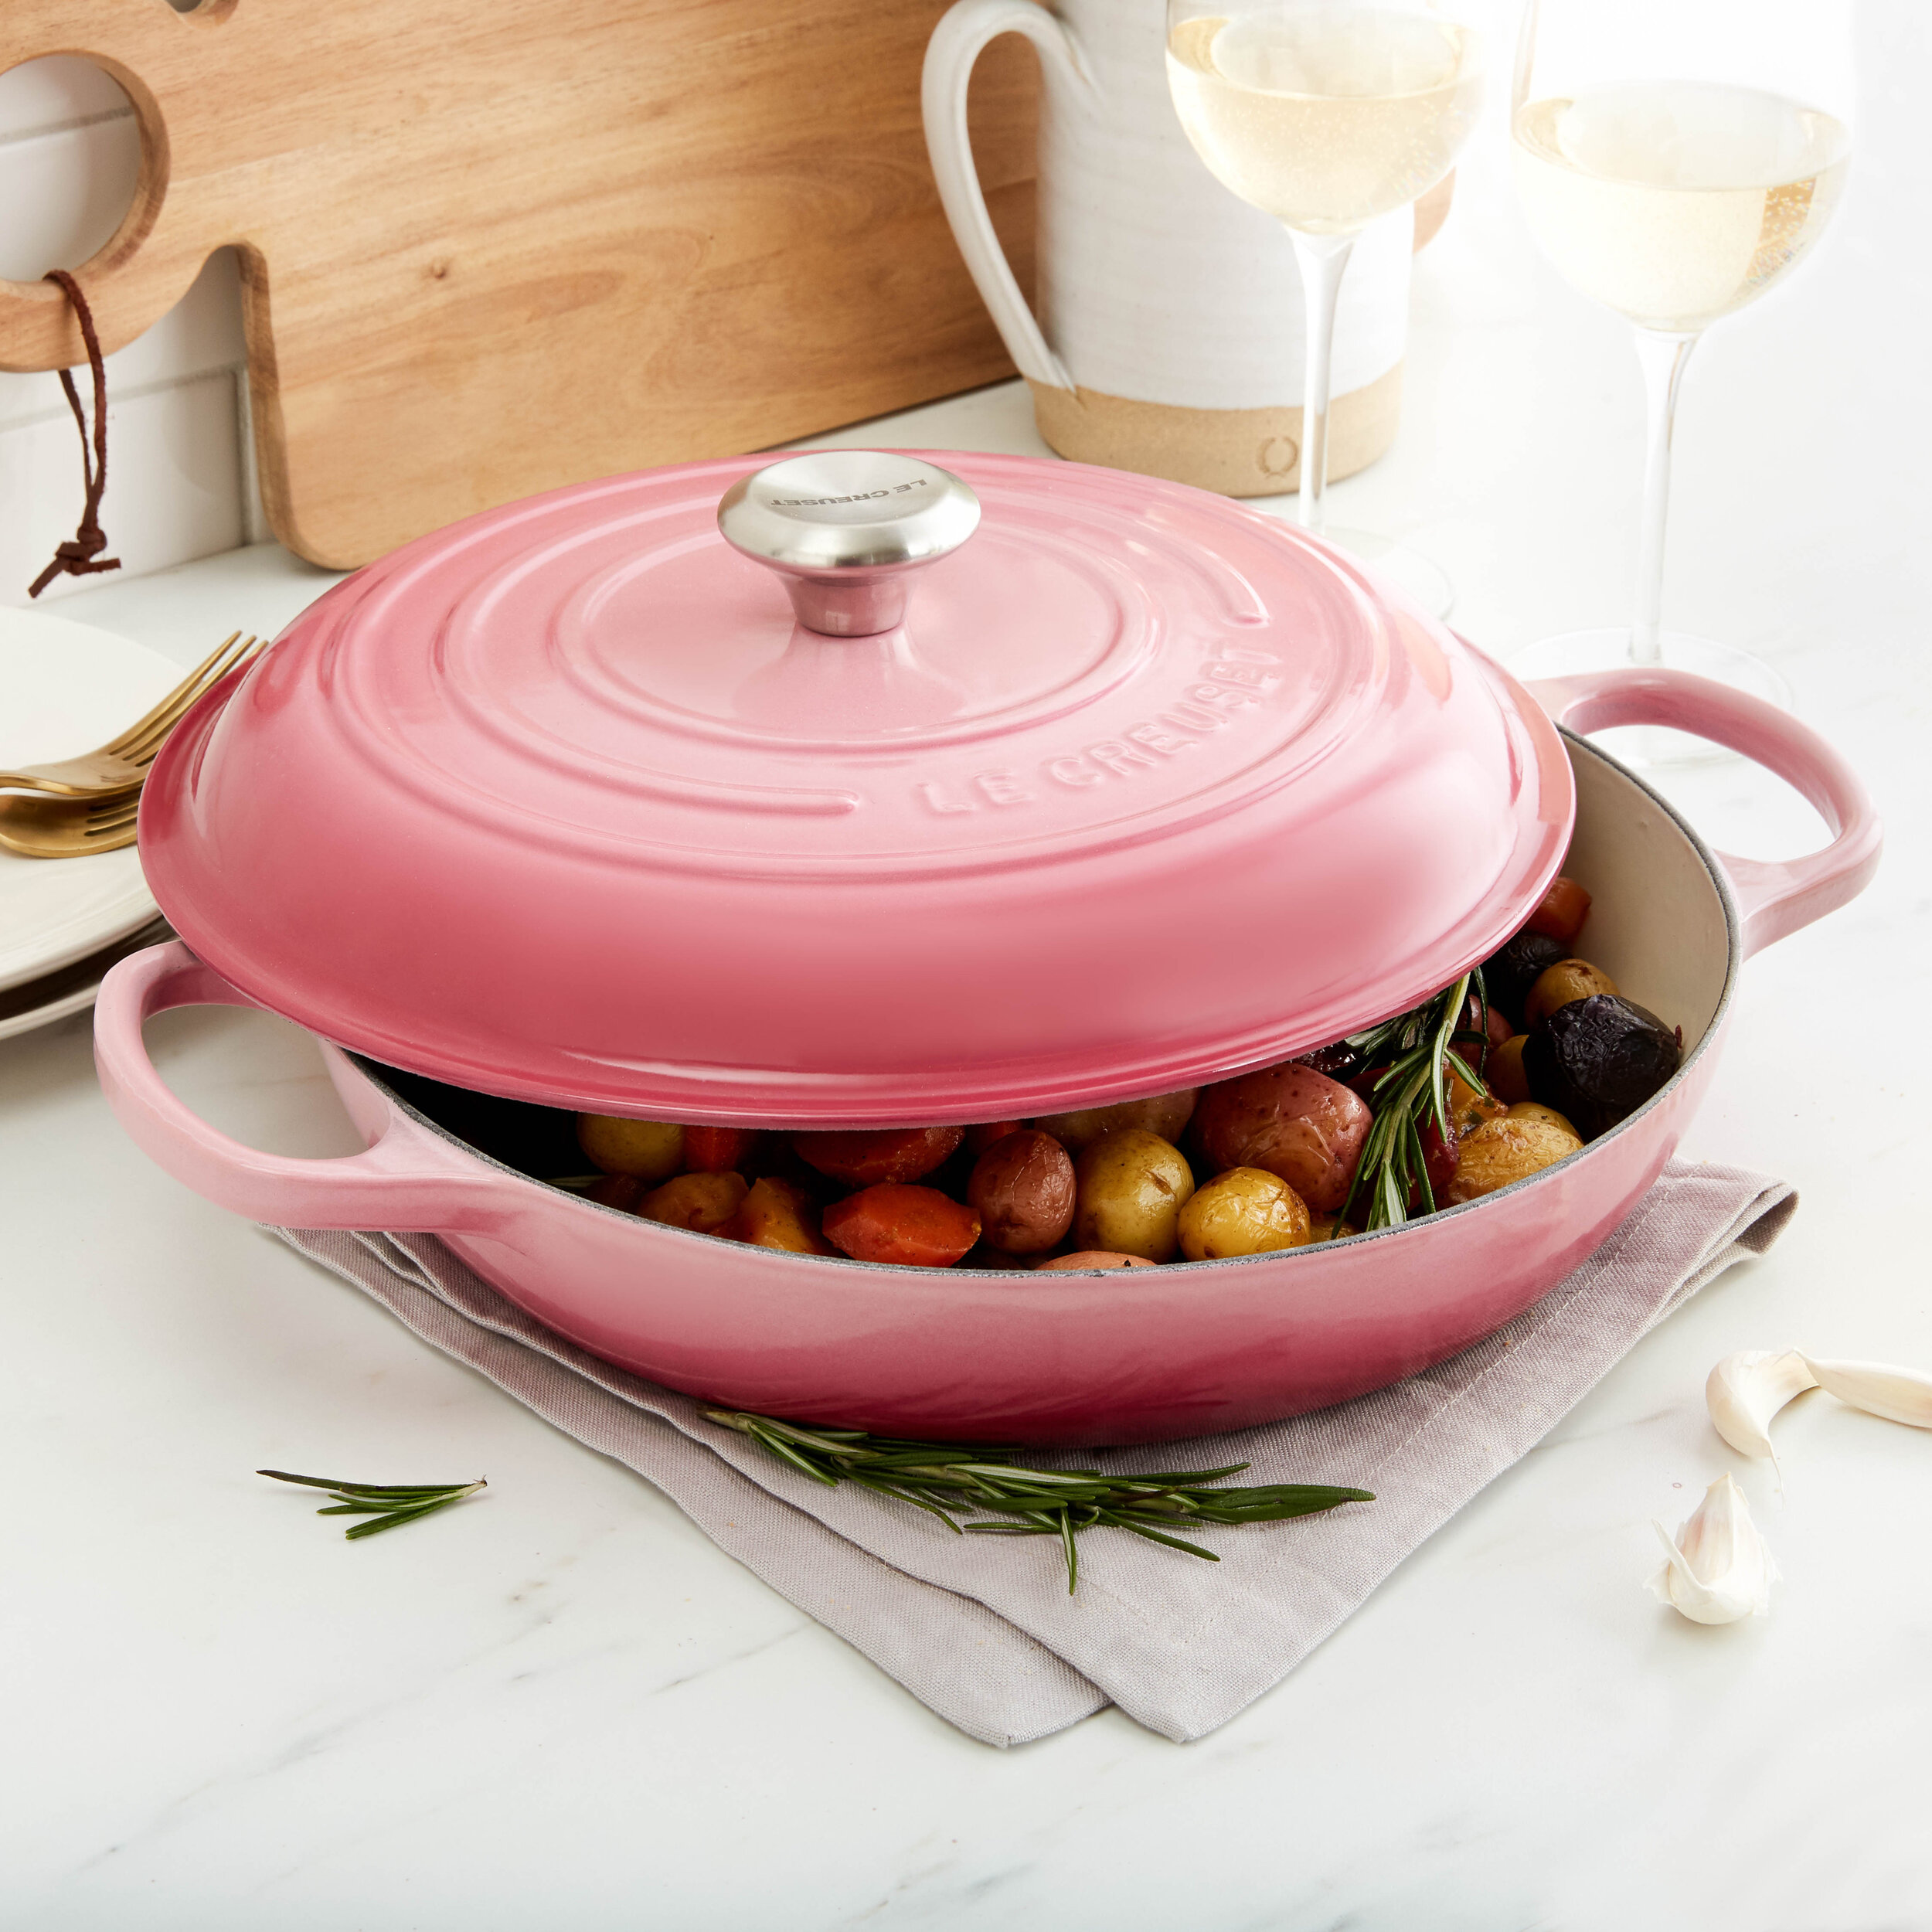 Le Creuset for Zola Product Imagery 2019